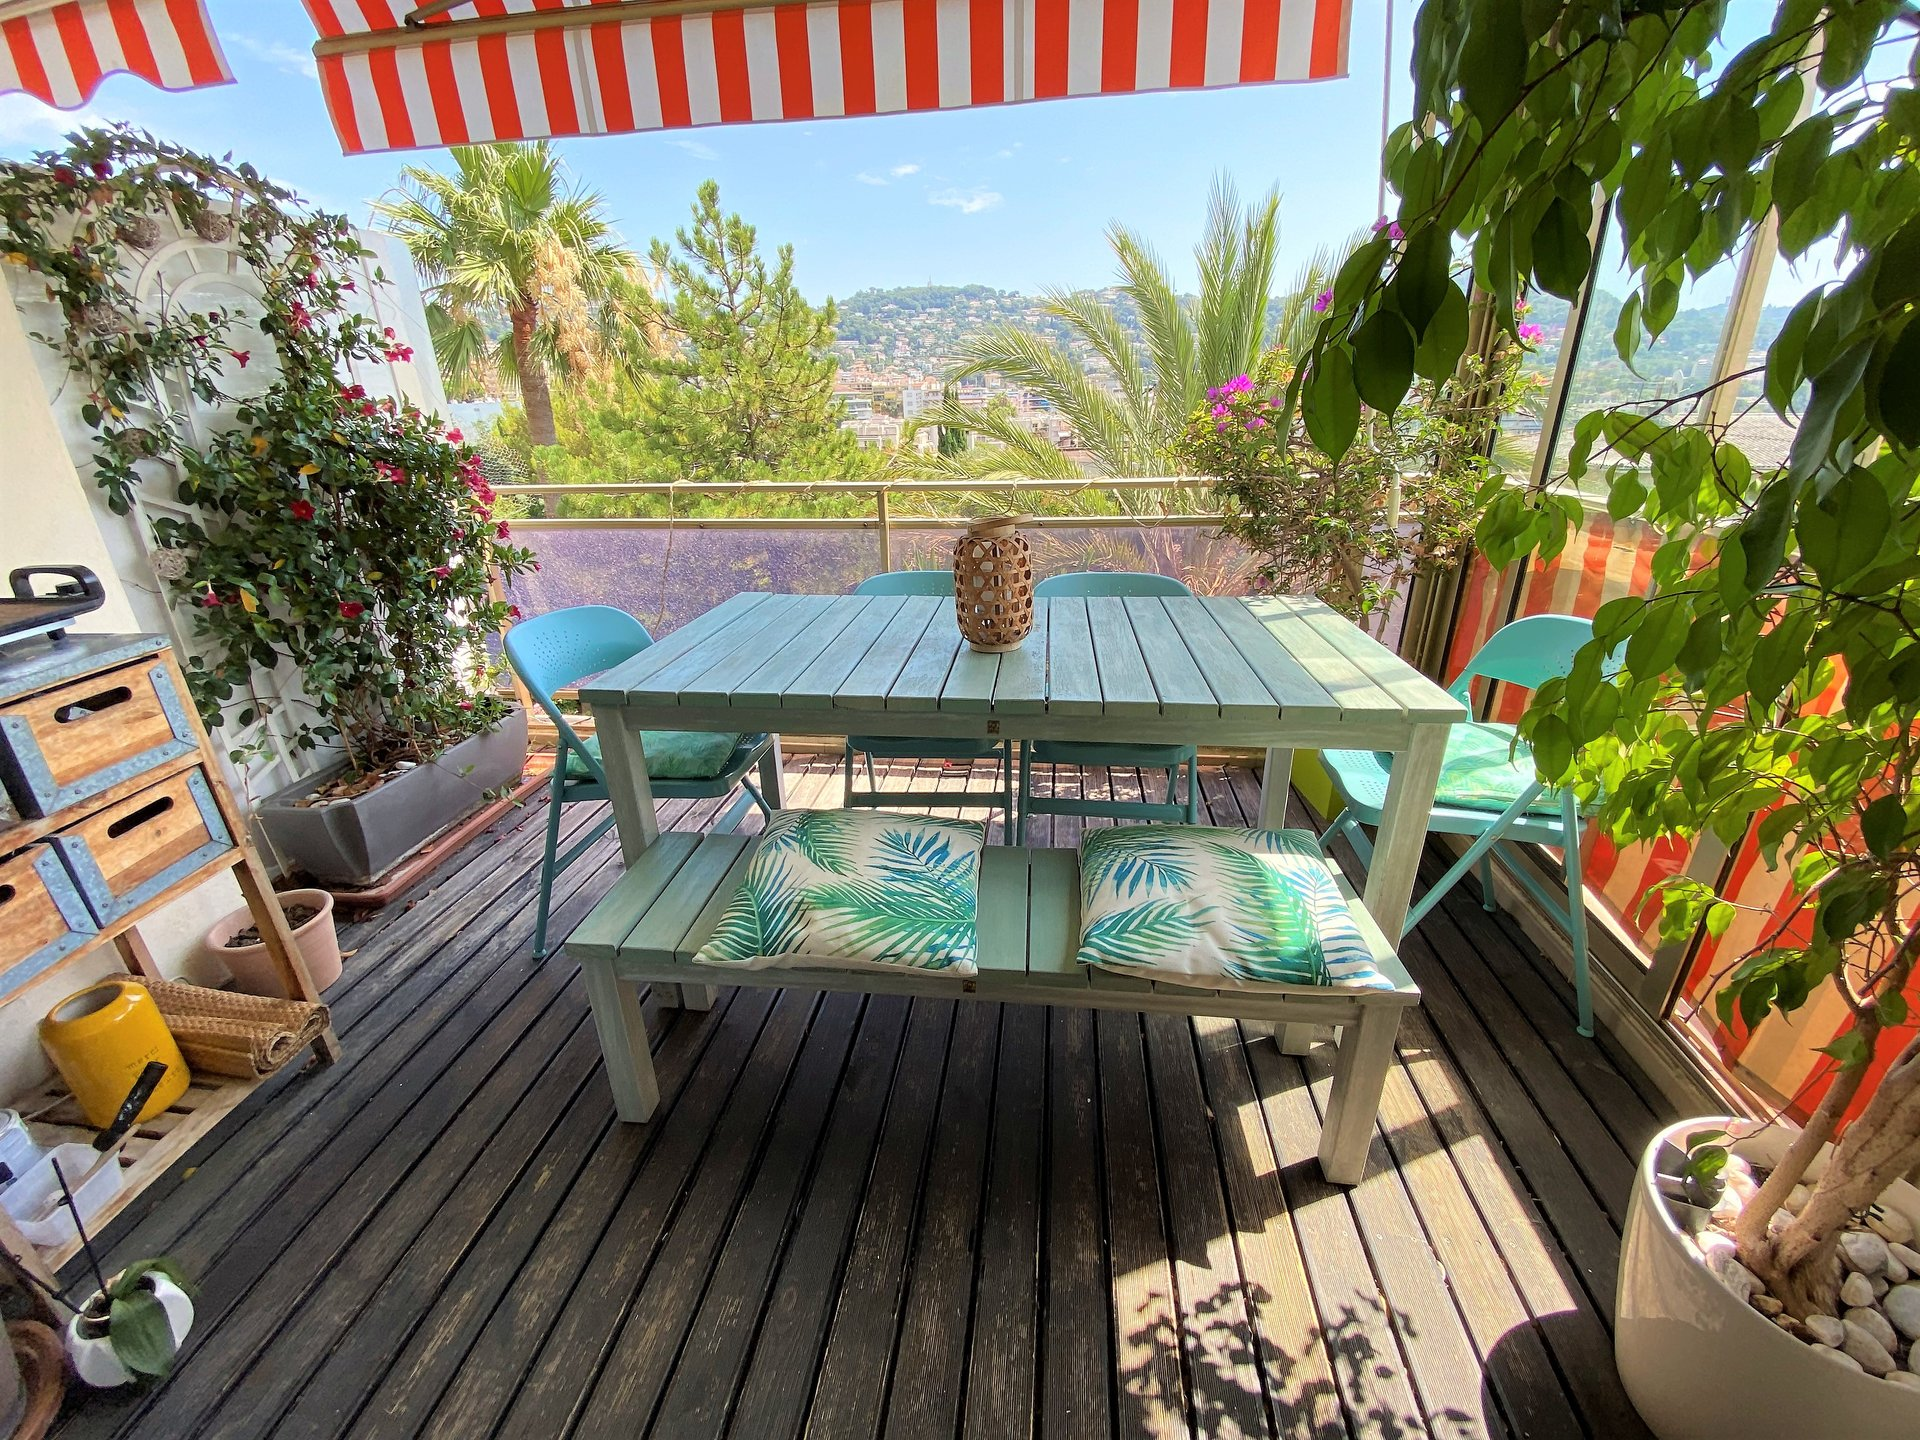 LE CANNET SALE 3 ROOMS CLEAR VIEW OF THE HILLS AND SEA